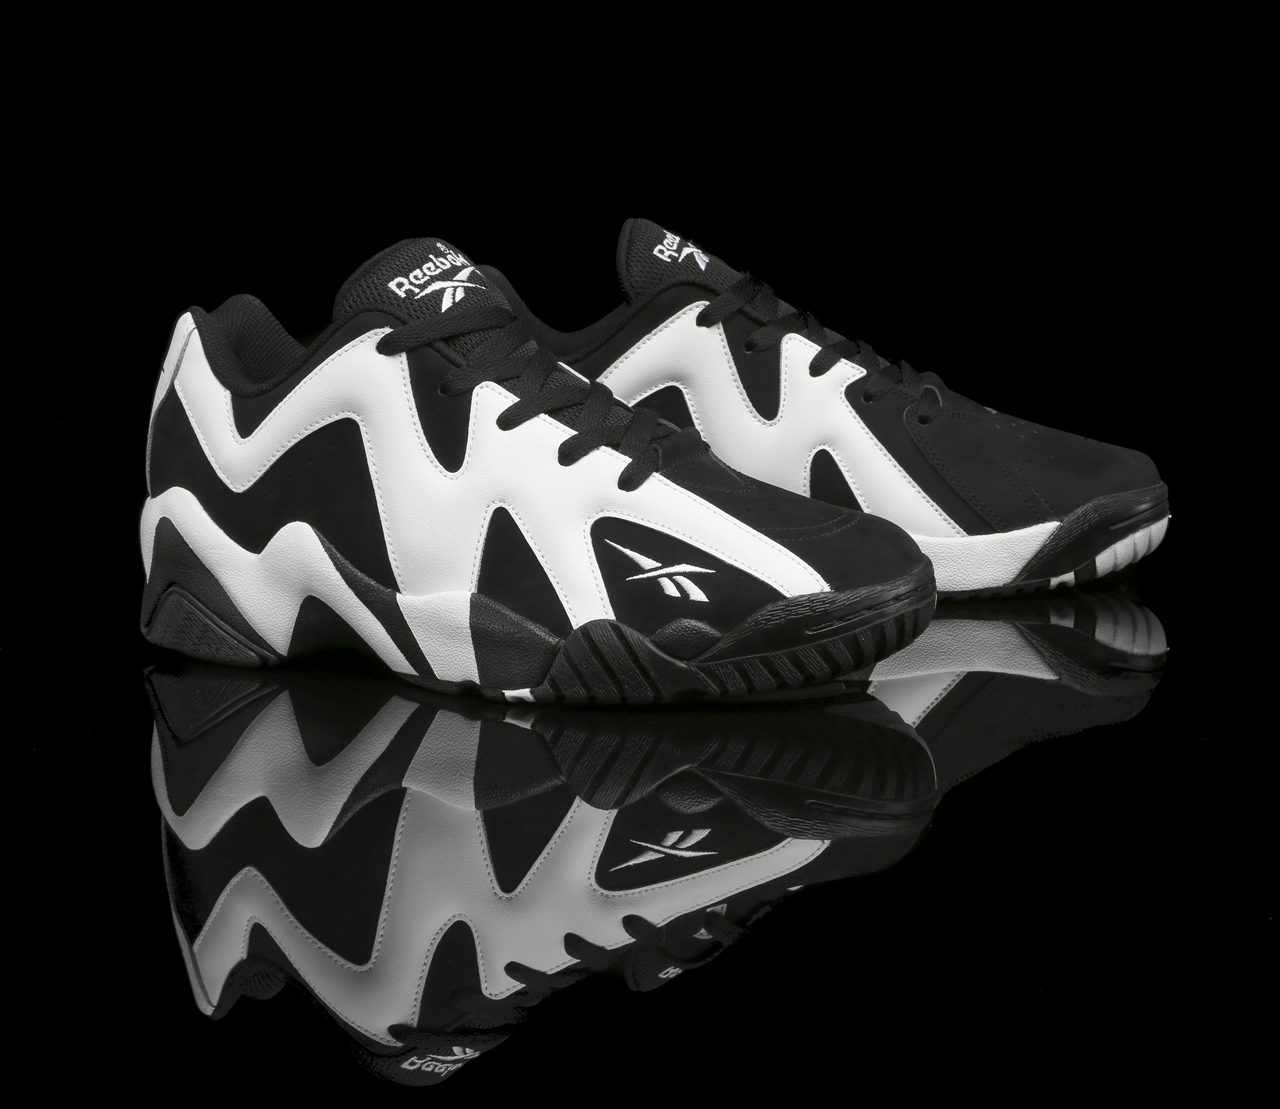 06e79ef5e569 Reebok Kamikaze II Low  Black White  Releasing This Month